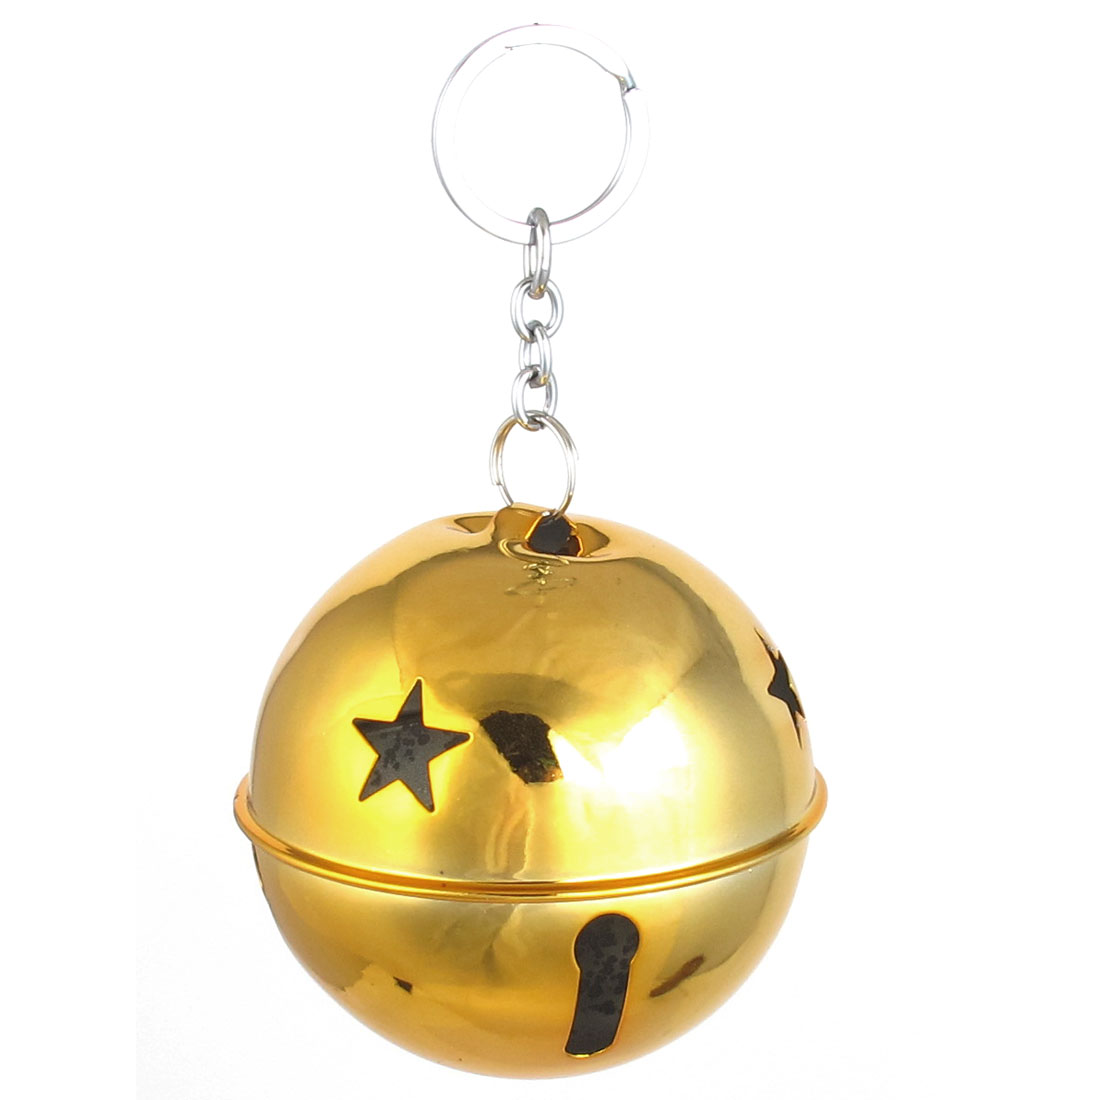 80mm Diameter Yellow Metal Keychain Split Star Hollow Out Design Ring Bell Ornament for Xmas Celebration Case Backpack Purse